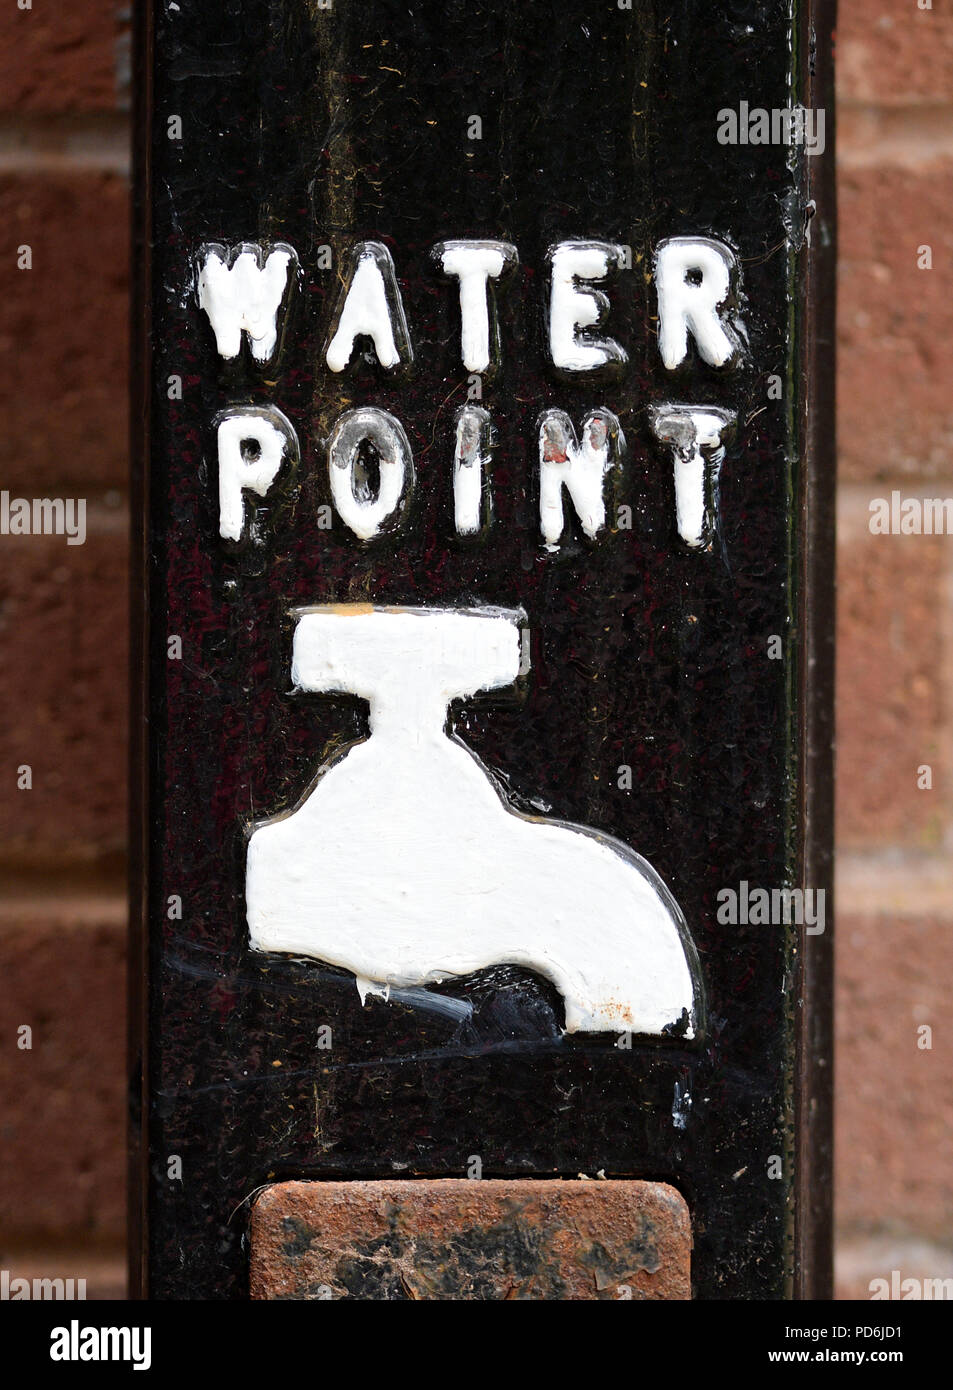 Water Point Sign with white paint text and tap faucet on black ...